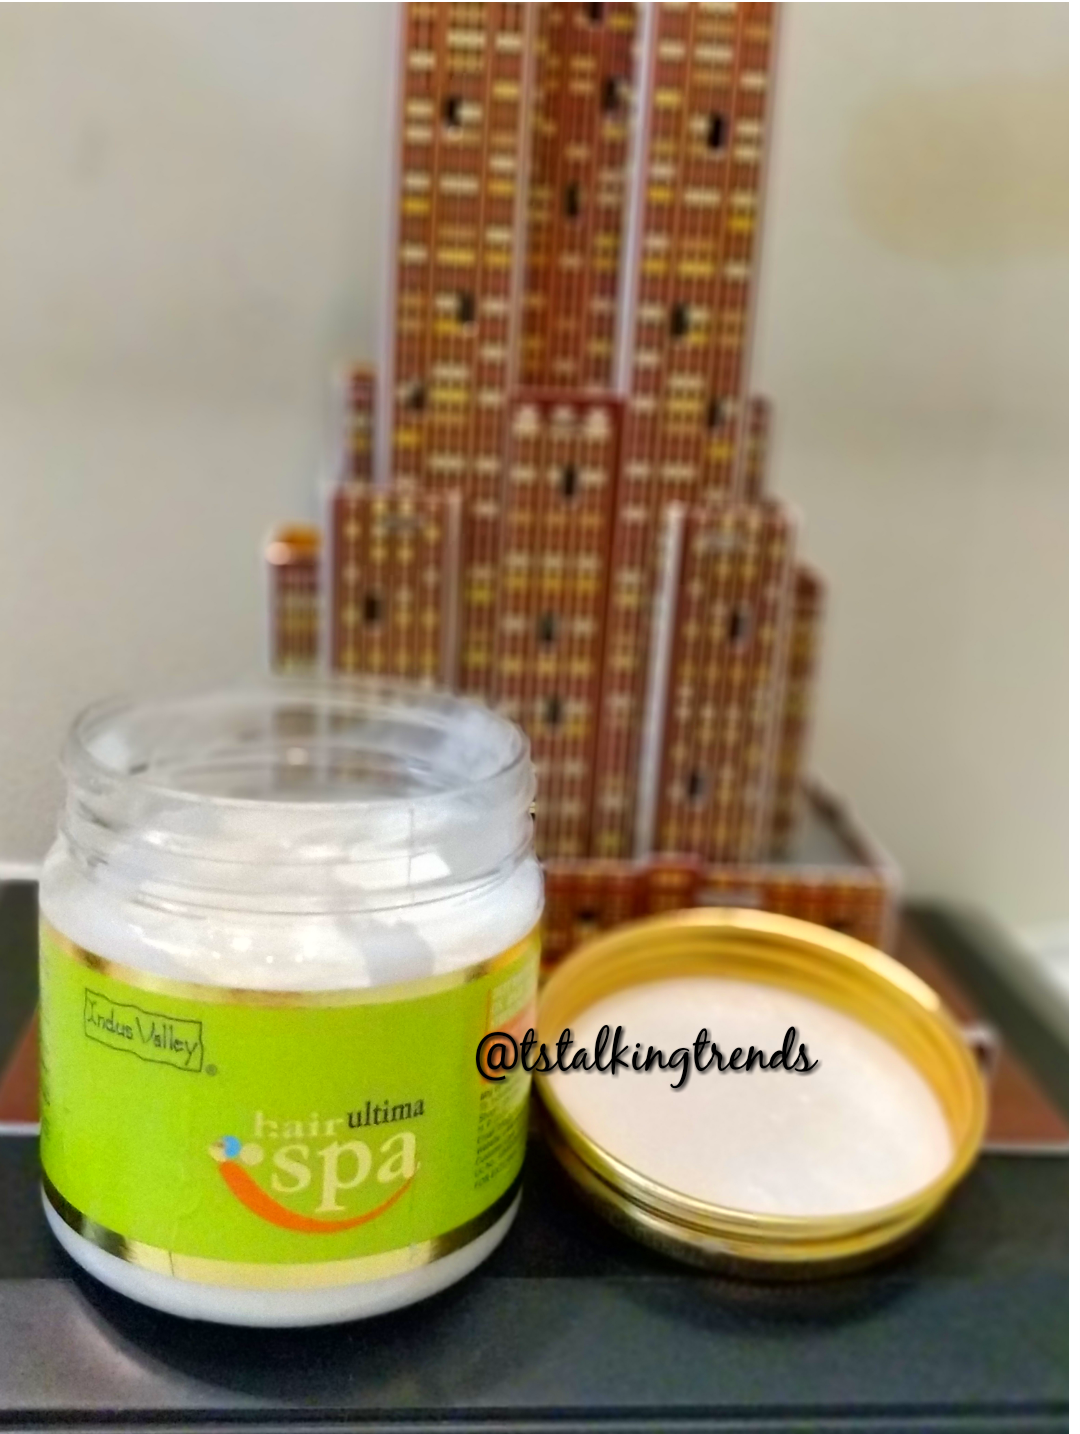 Indus Valley Hair Ultima Spa Mask image